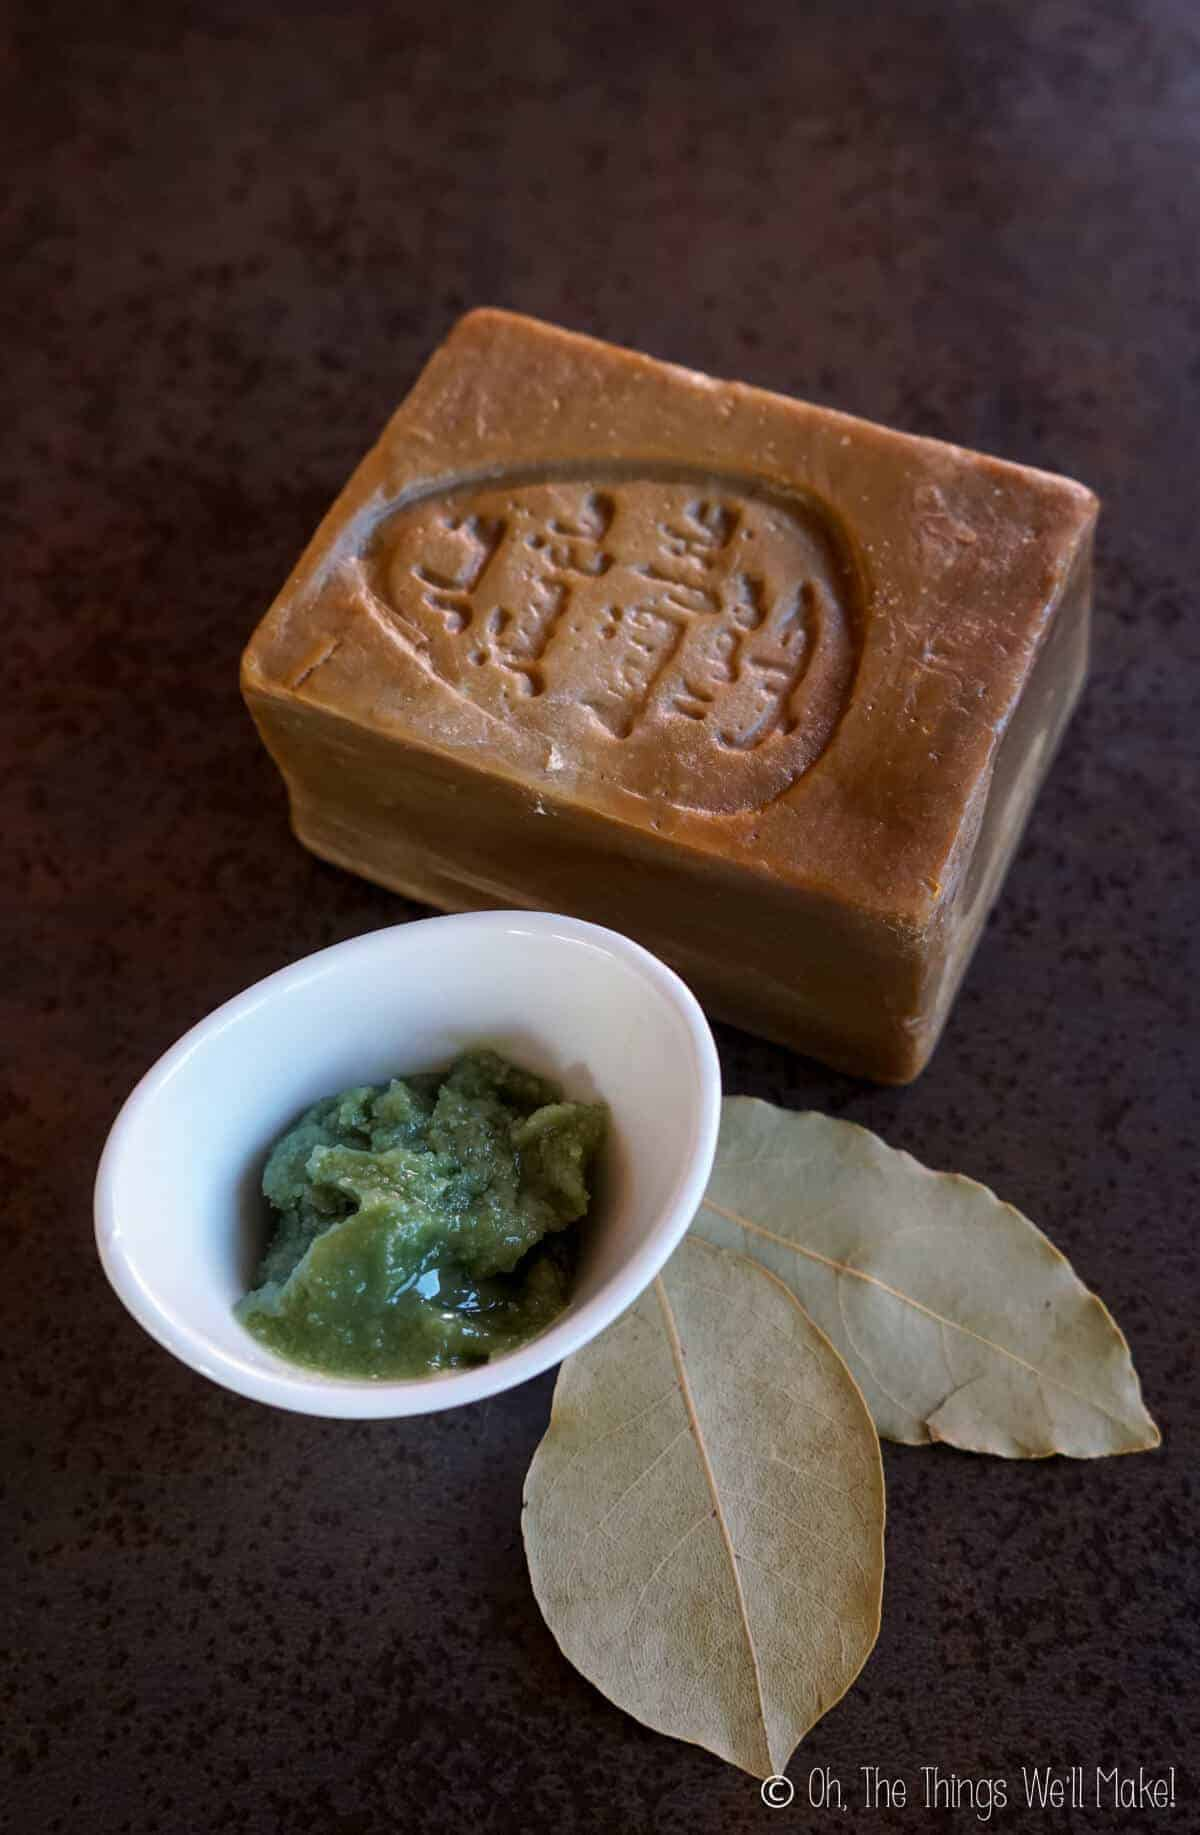 Overhead view of a small container with laurel berry oil next to some bay leaves and a bar of Aleppo soap